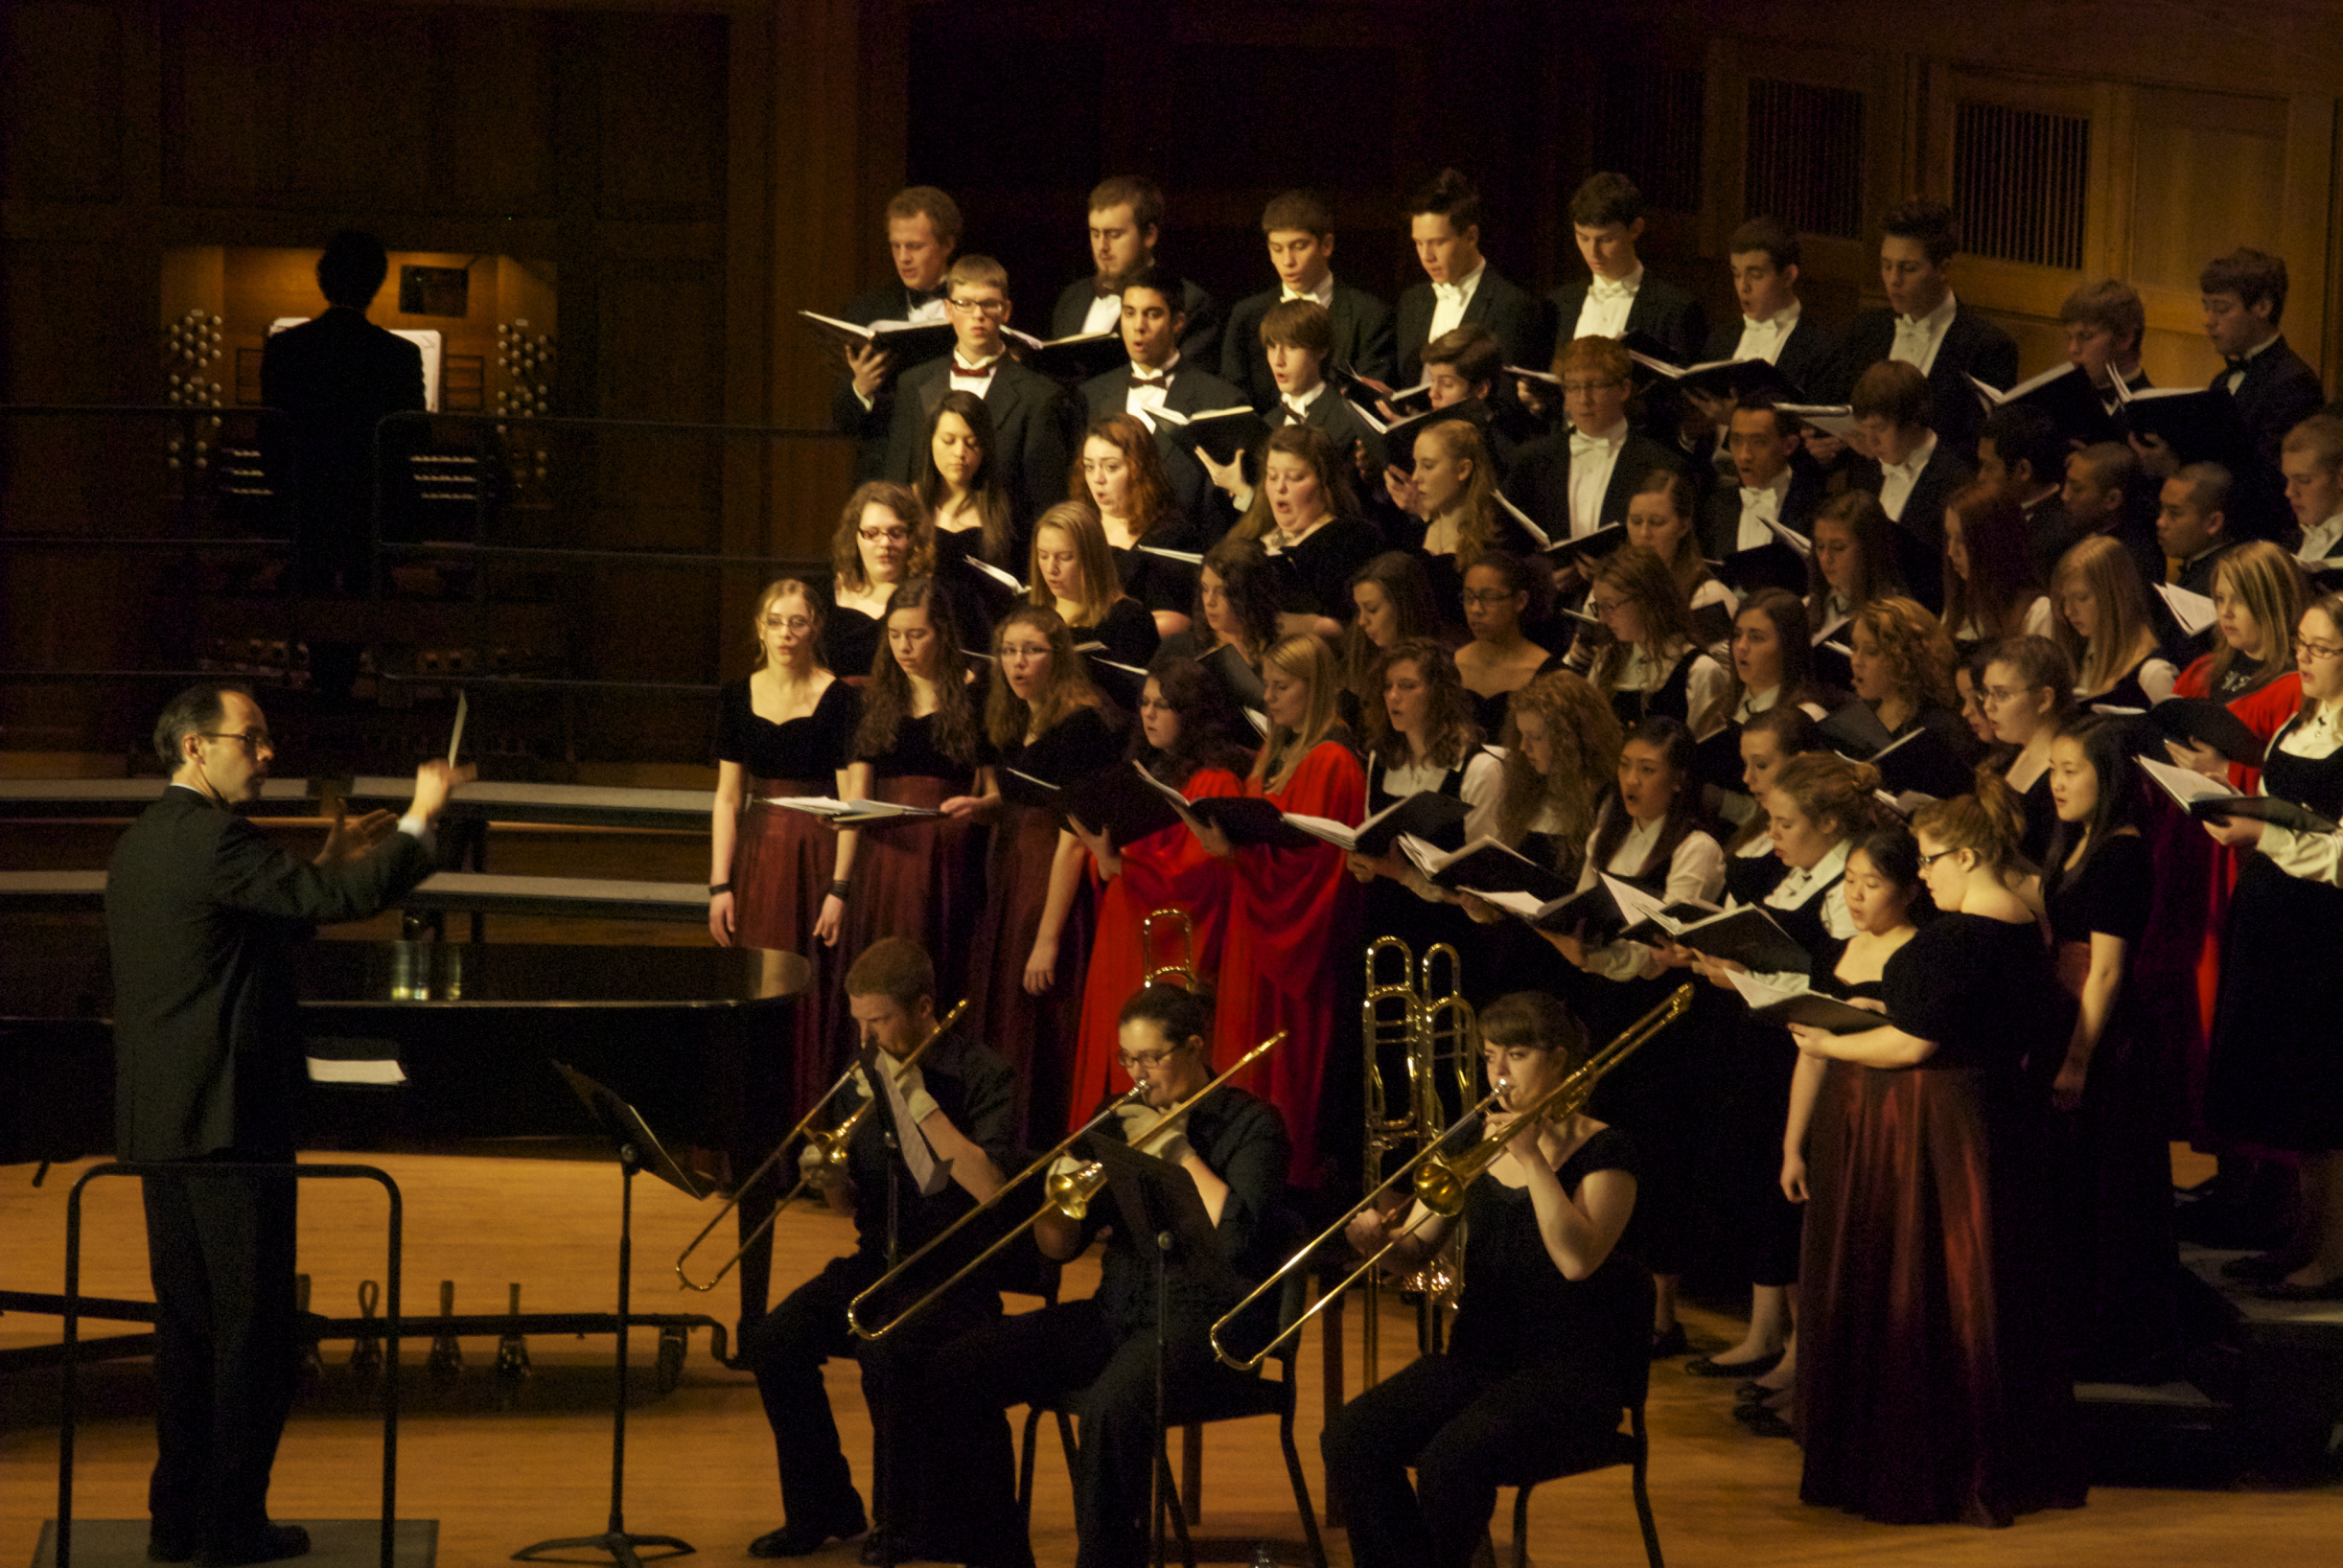 Lawrence's choirs offer up an energizing evening of fine